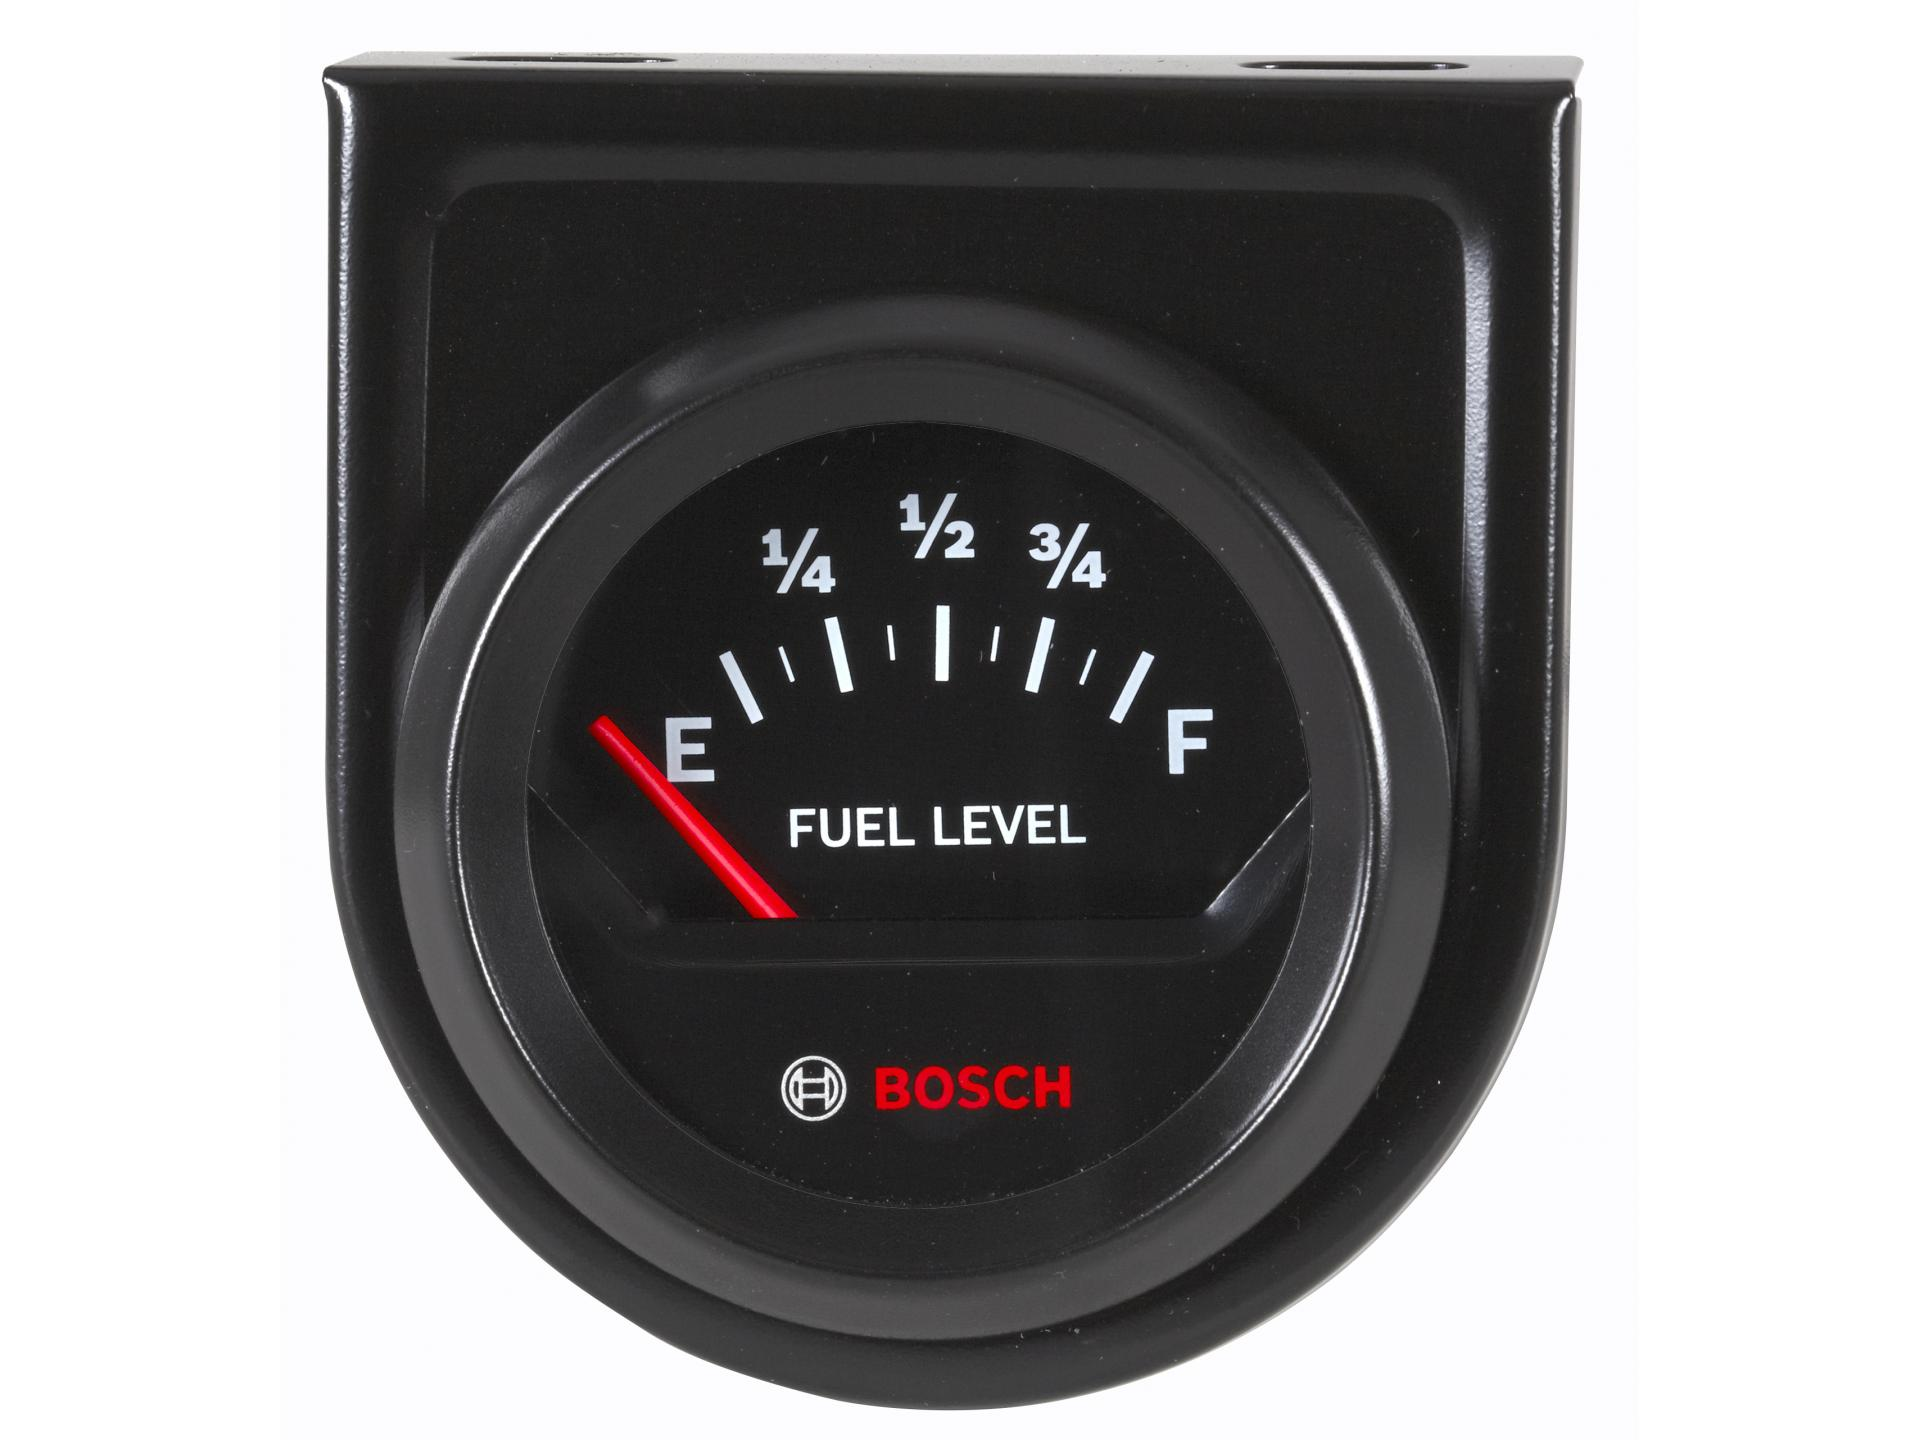 bosch gauges represent the latest in design following our 100+ year history  of automotive, industrial, and racing products  the style line features a  clean